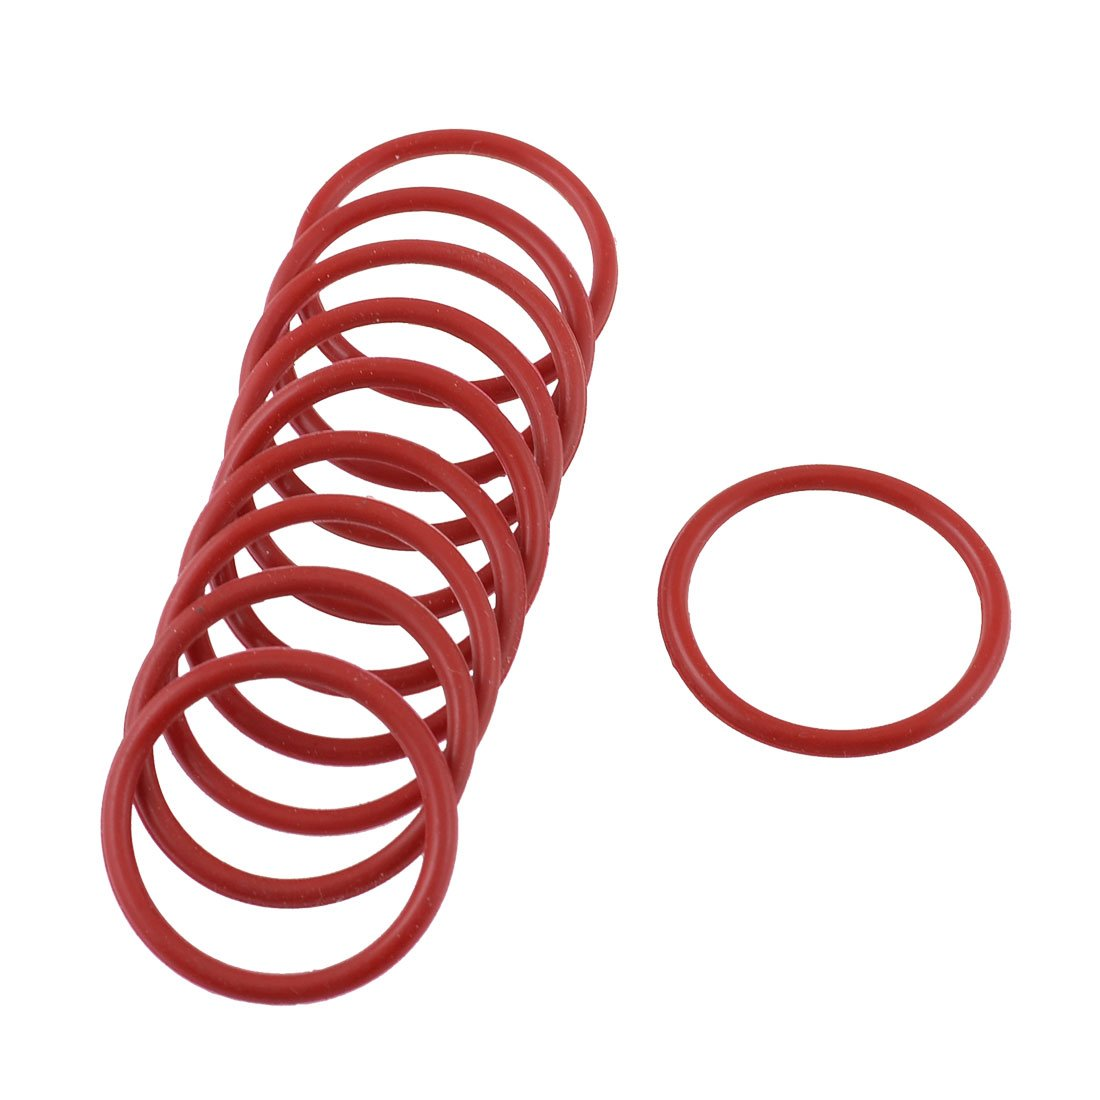 100mm x 96mm x 2mm Red Silicone O Ring Oil Seal Gaskets Sourcingmap a12040200ux0295